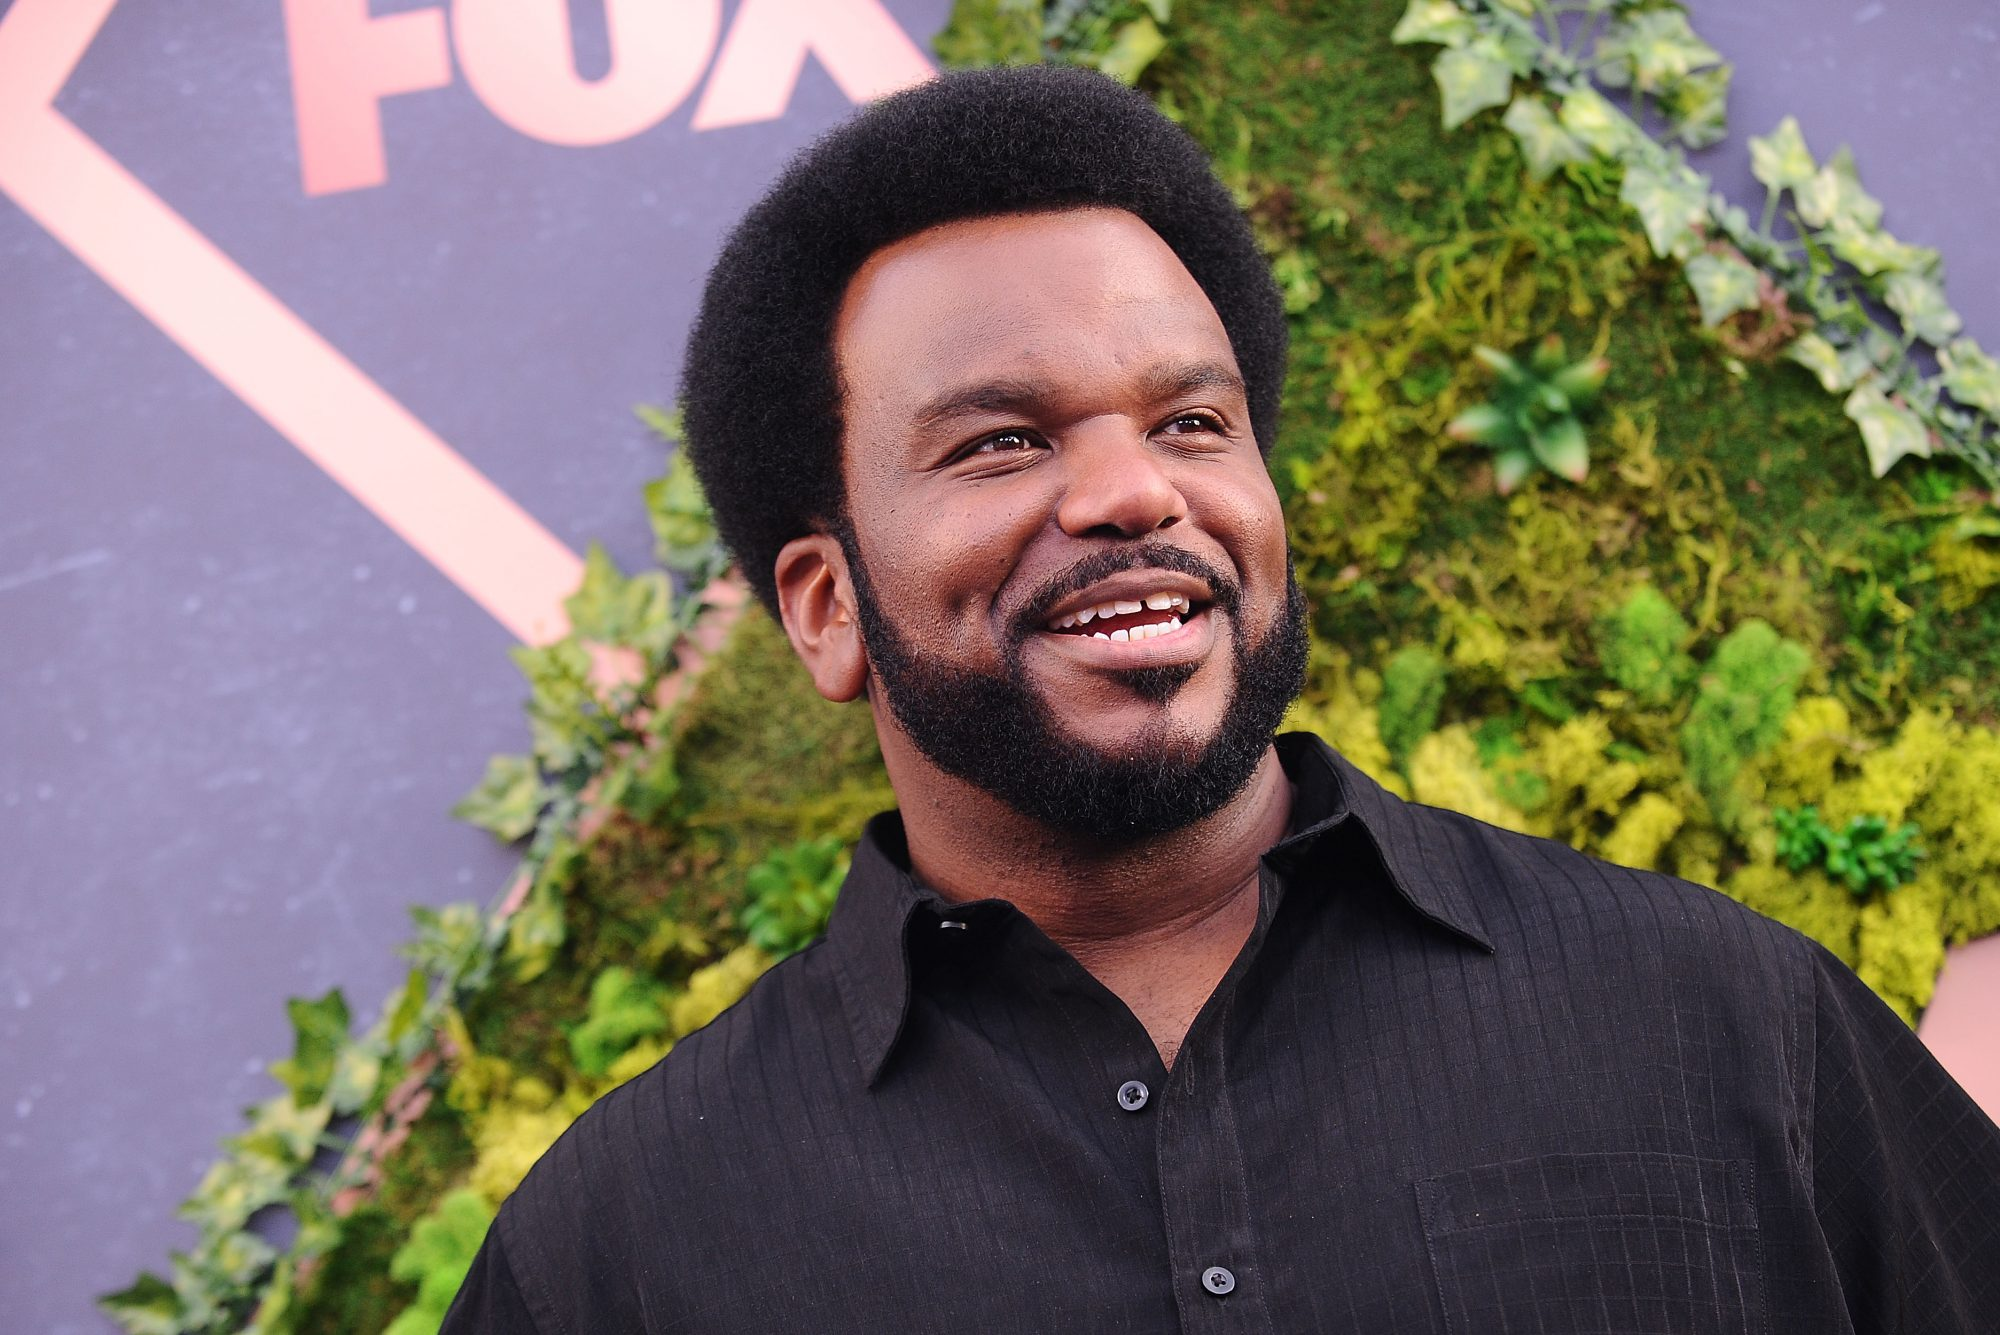 Craig Robinson Lost 50 Lbs. By Going Vegan and Cutting Out Alcohol: 'It Was Much Easier Than I Thought'